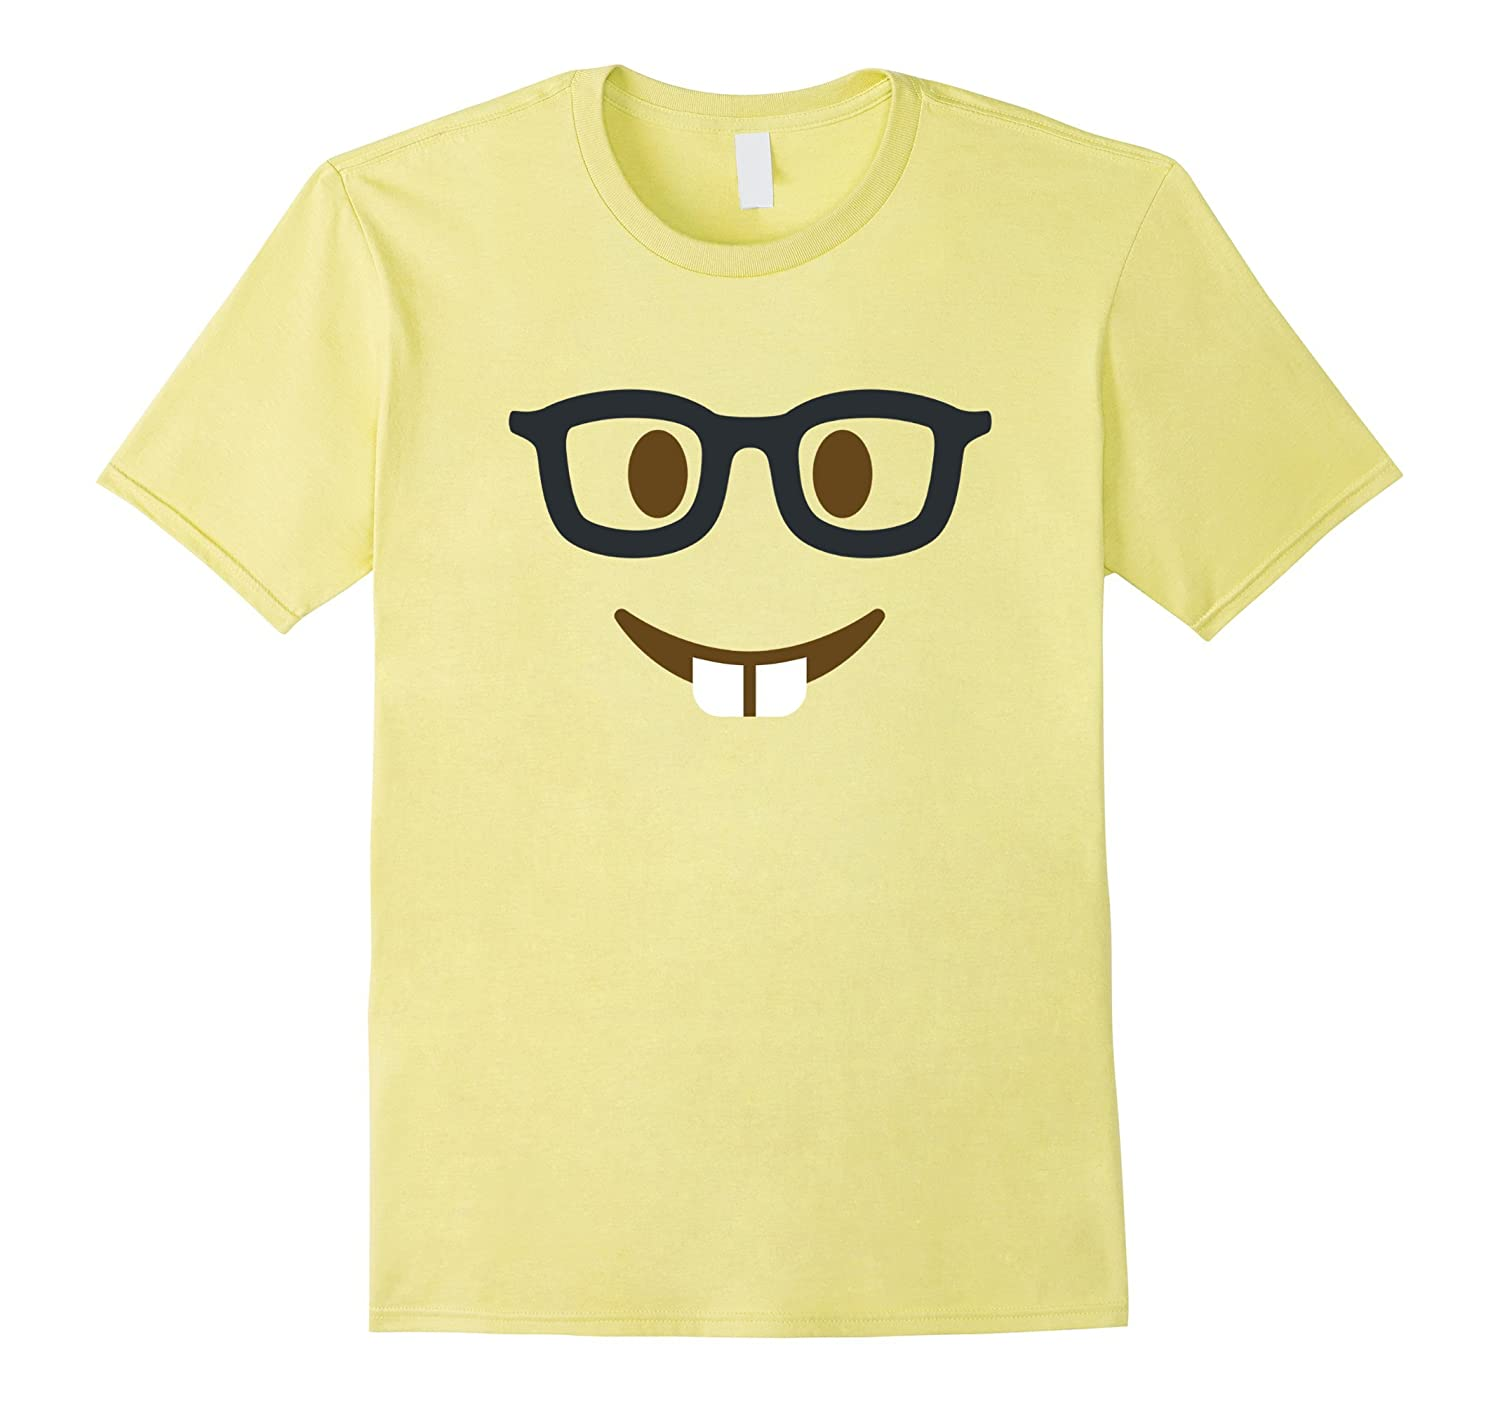 Nerd geek face emoji group tshirt, funny couples costume-T-Shirt